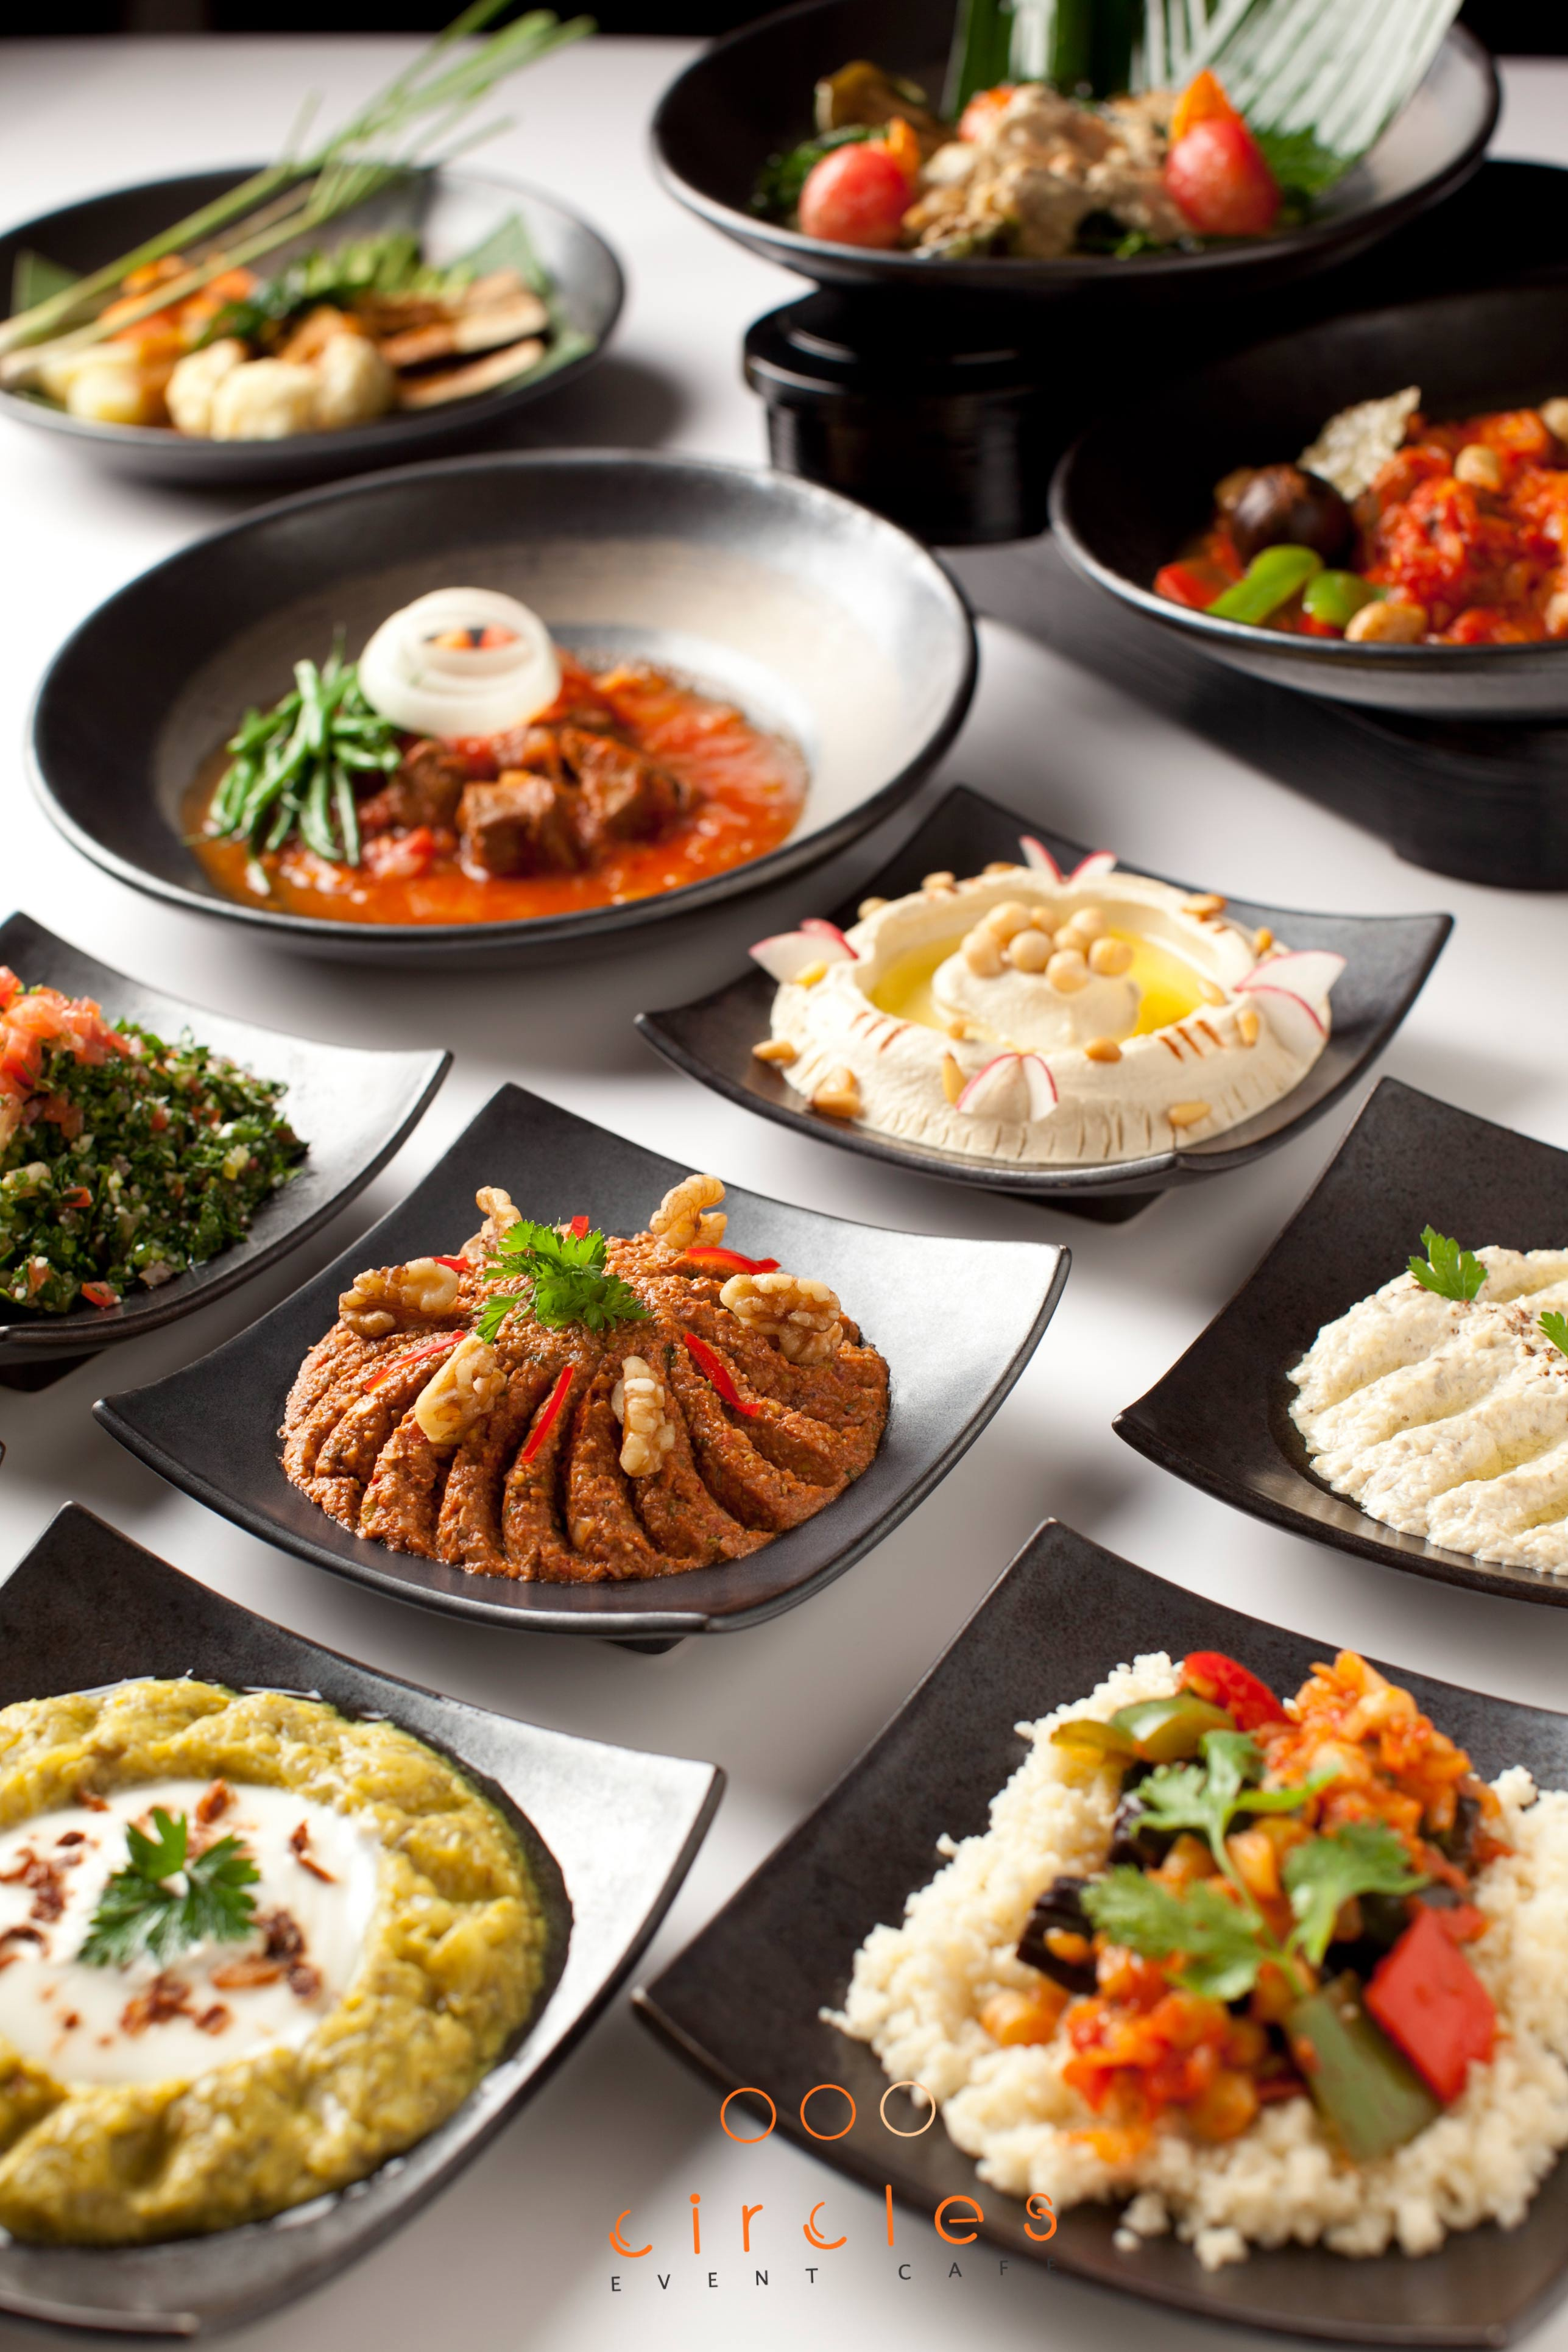 Buffet Meal. Buy Makati Shangri-la Circles Gift Certificates and Gift Cards at Gifted.PH online for anyone in Manila Philippines